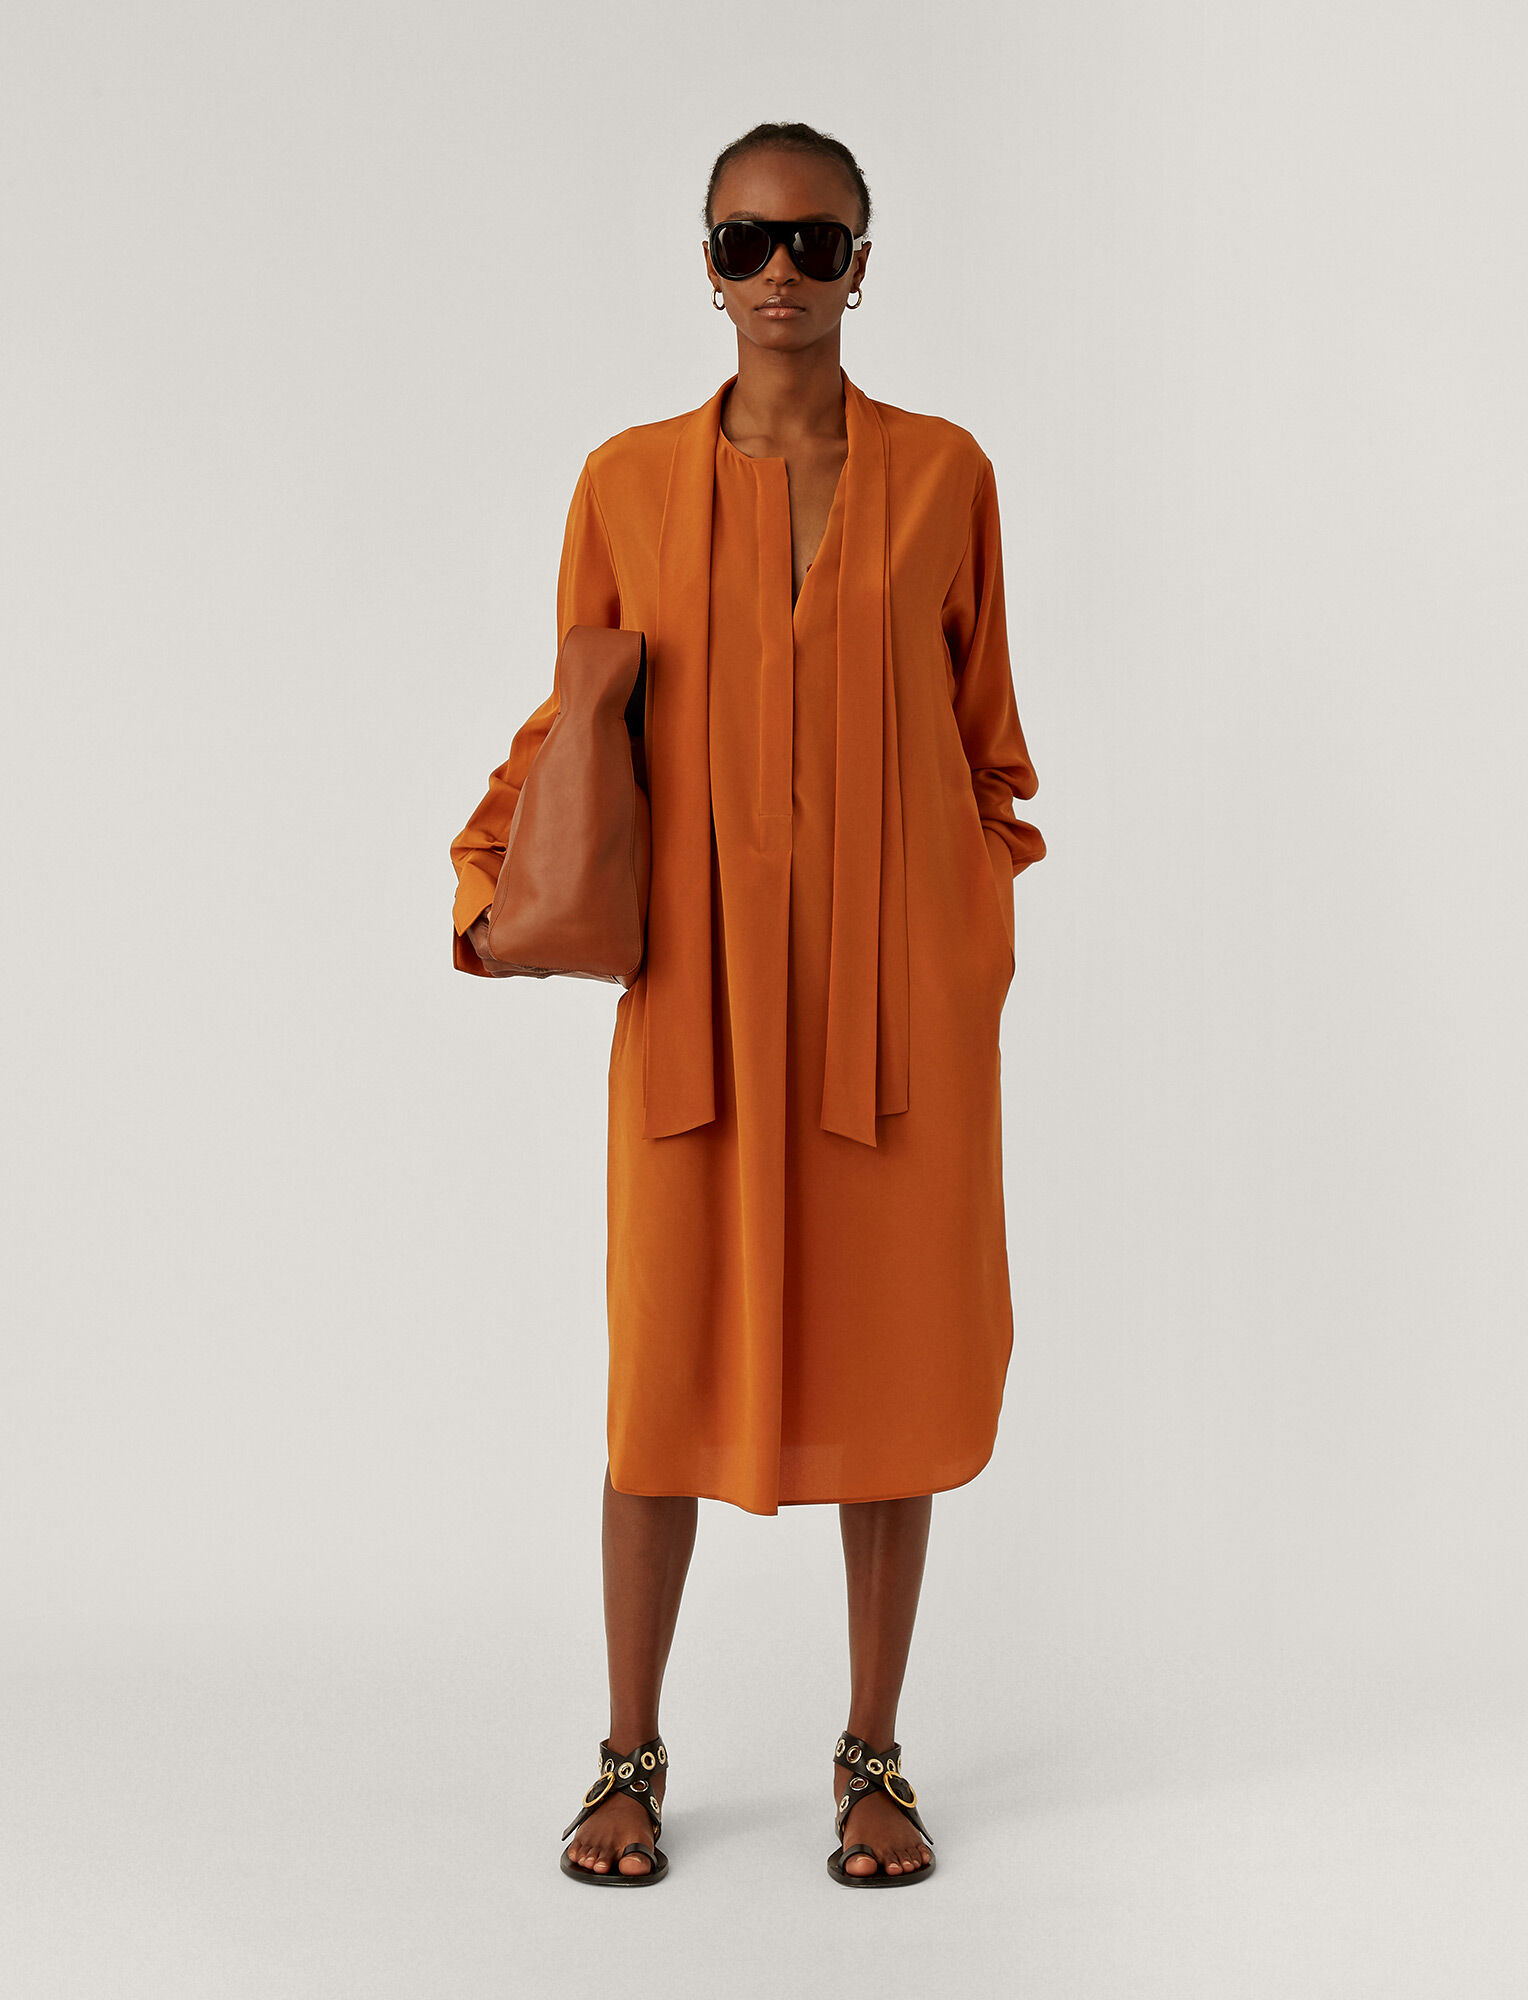 Joseph, Dorianne Crepe De Chine Dress, in Fox